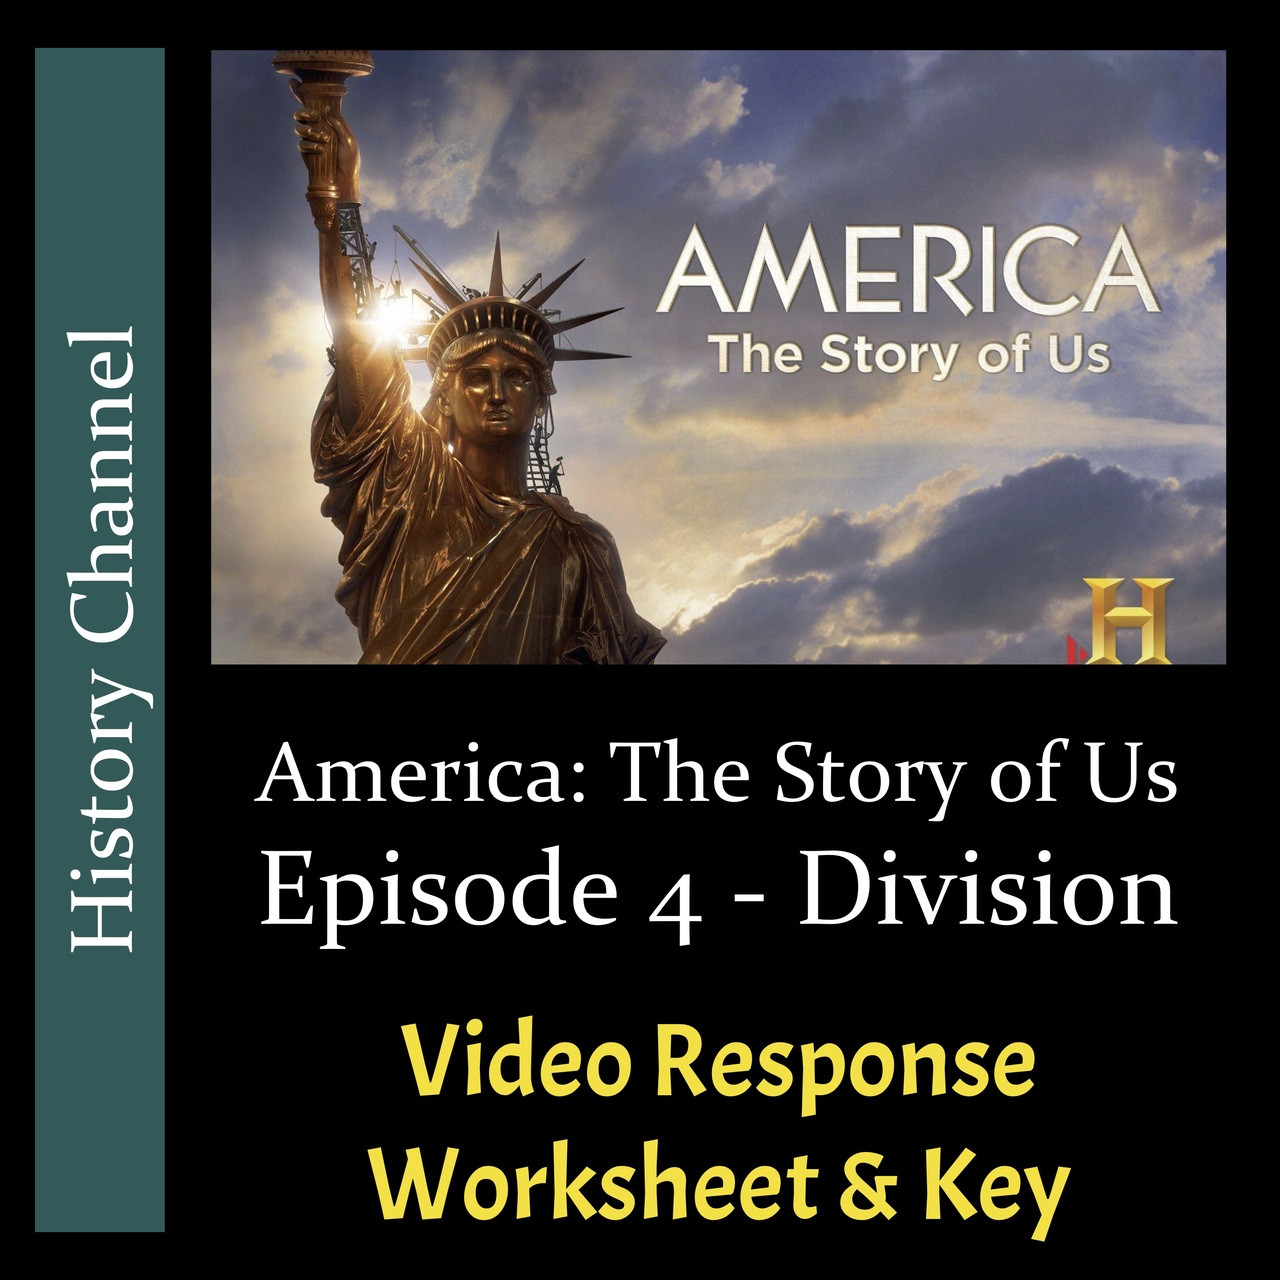 America The Story of Us - Episode 04: Division - Video Response Worksheet & Key (Editable)